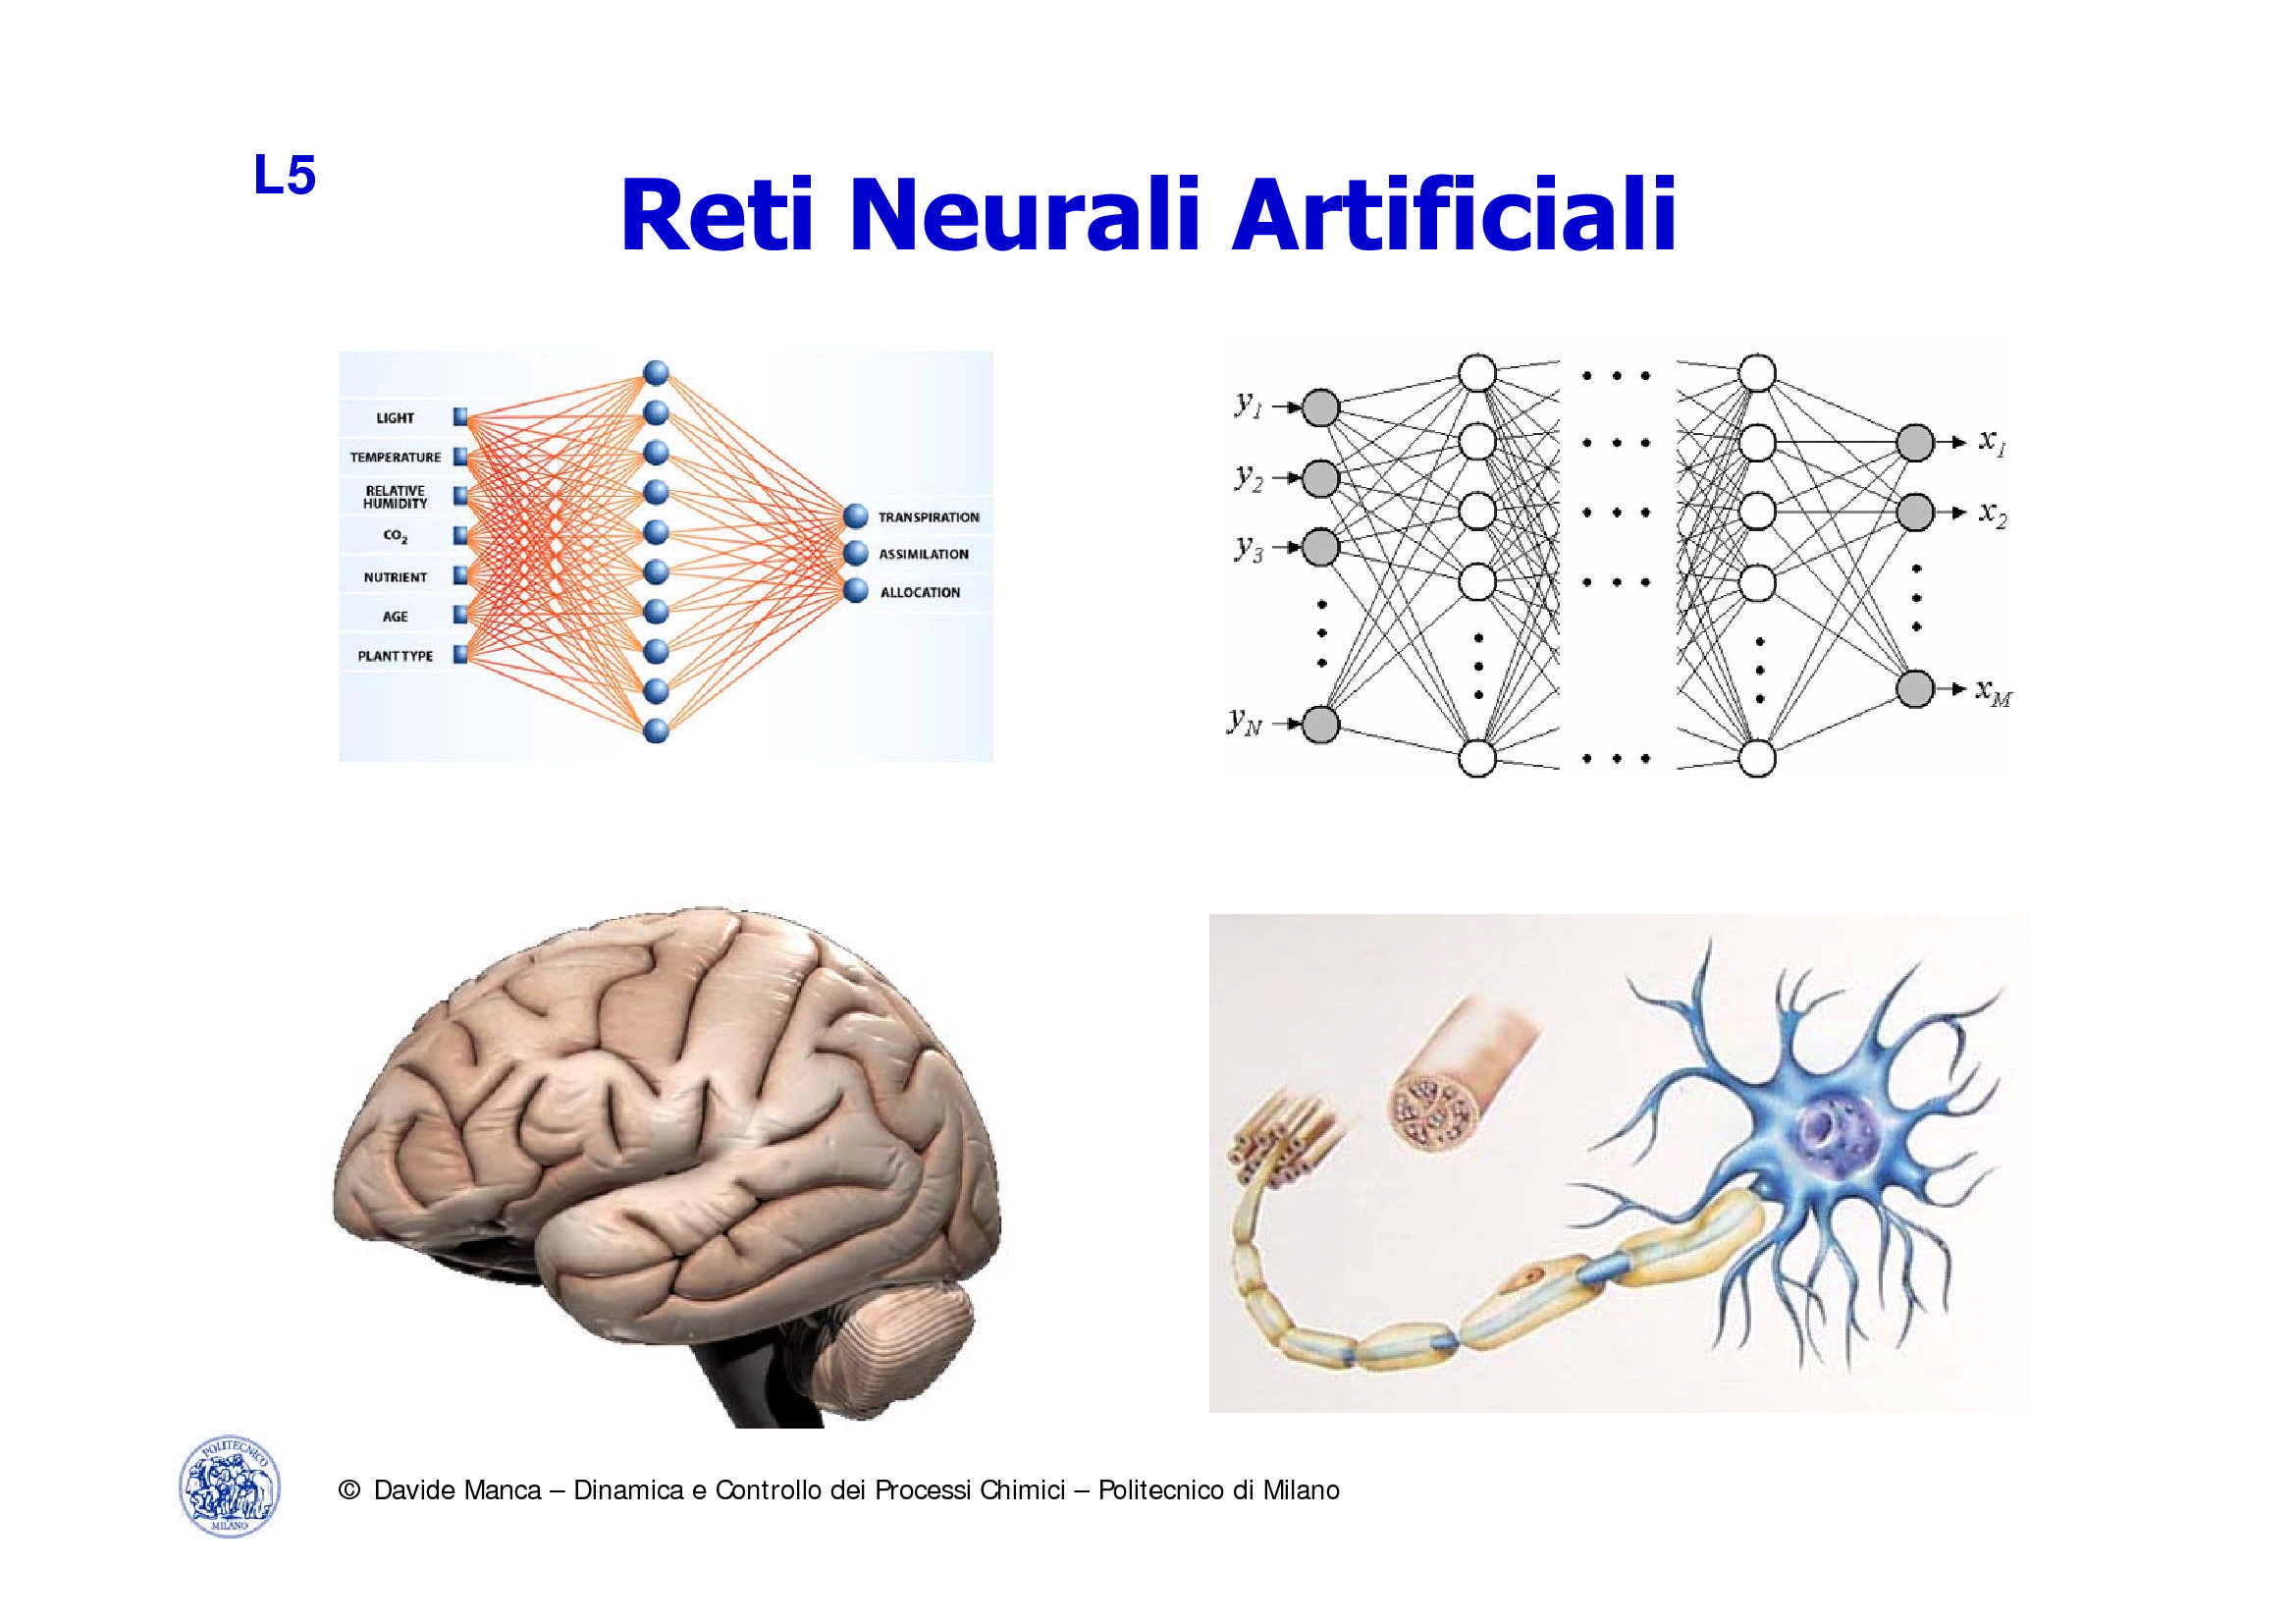 Reti Neurali Artificiali - ANN